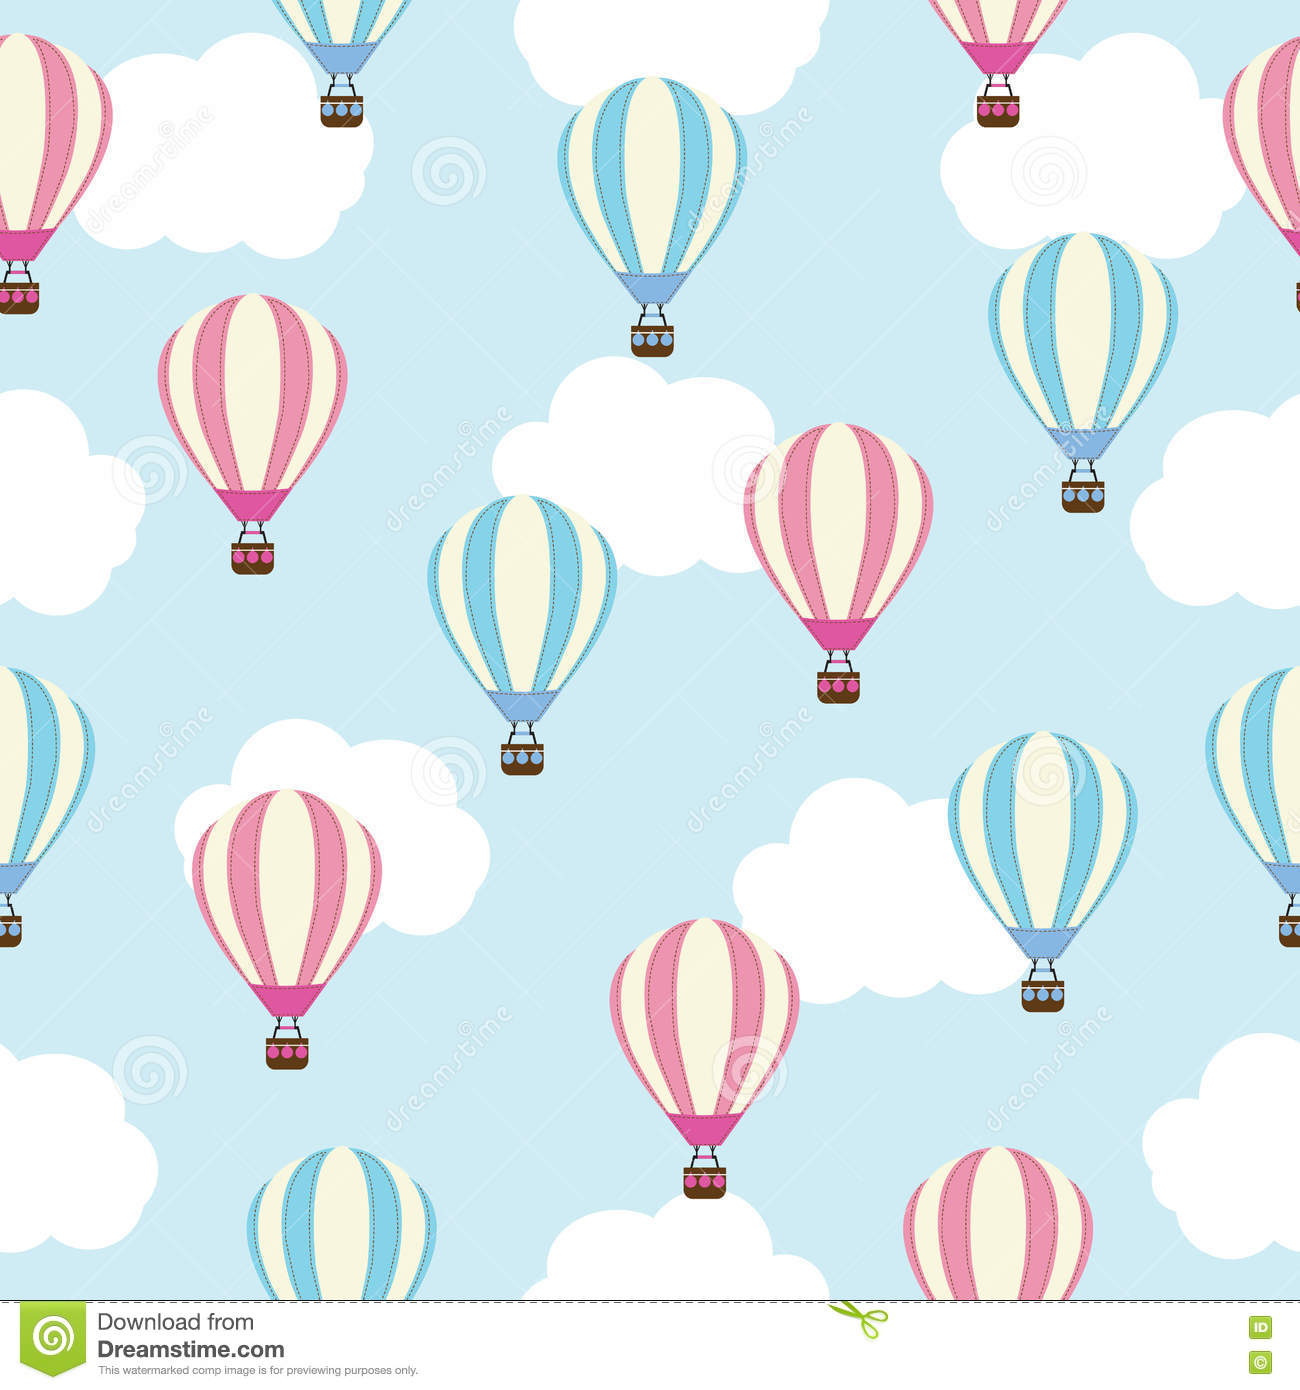 Air Baby Background Balloon Blue Hot Illustration Paper Scrap Seamless  Shower Sky Wallpaper ...